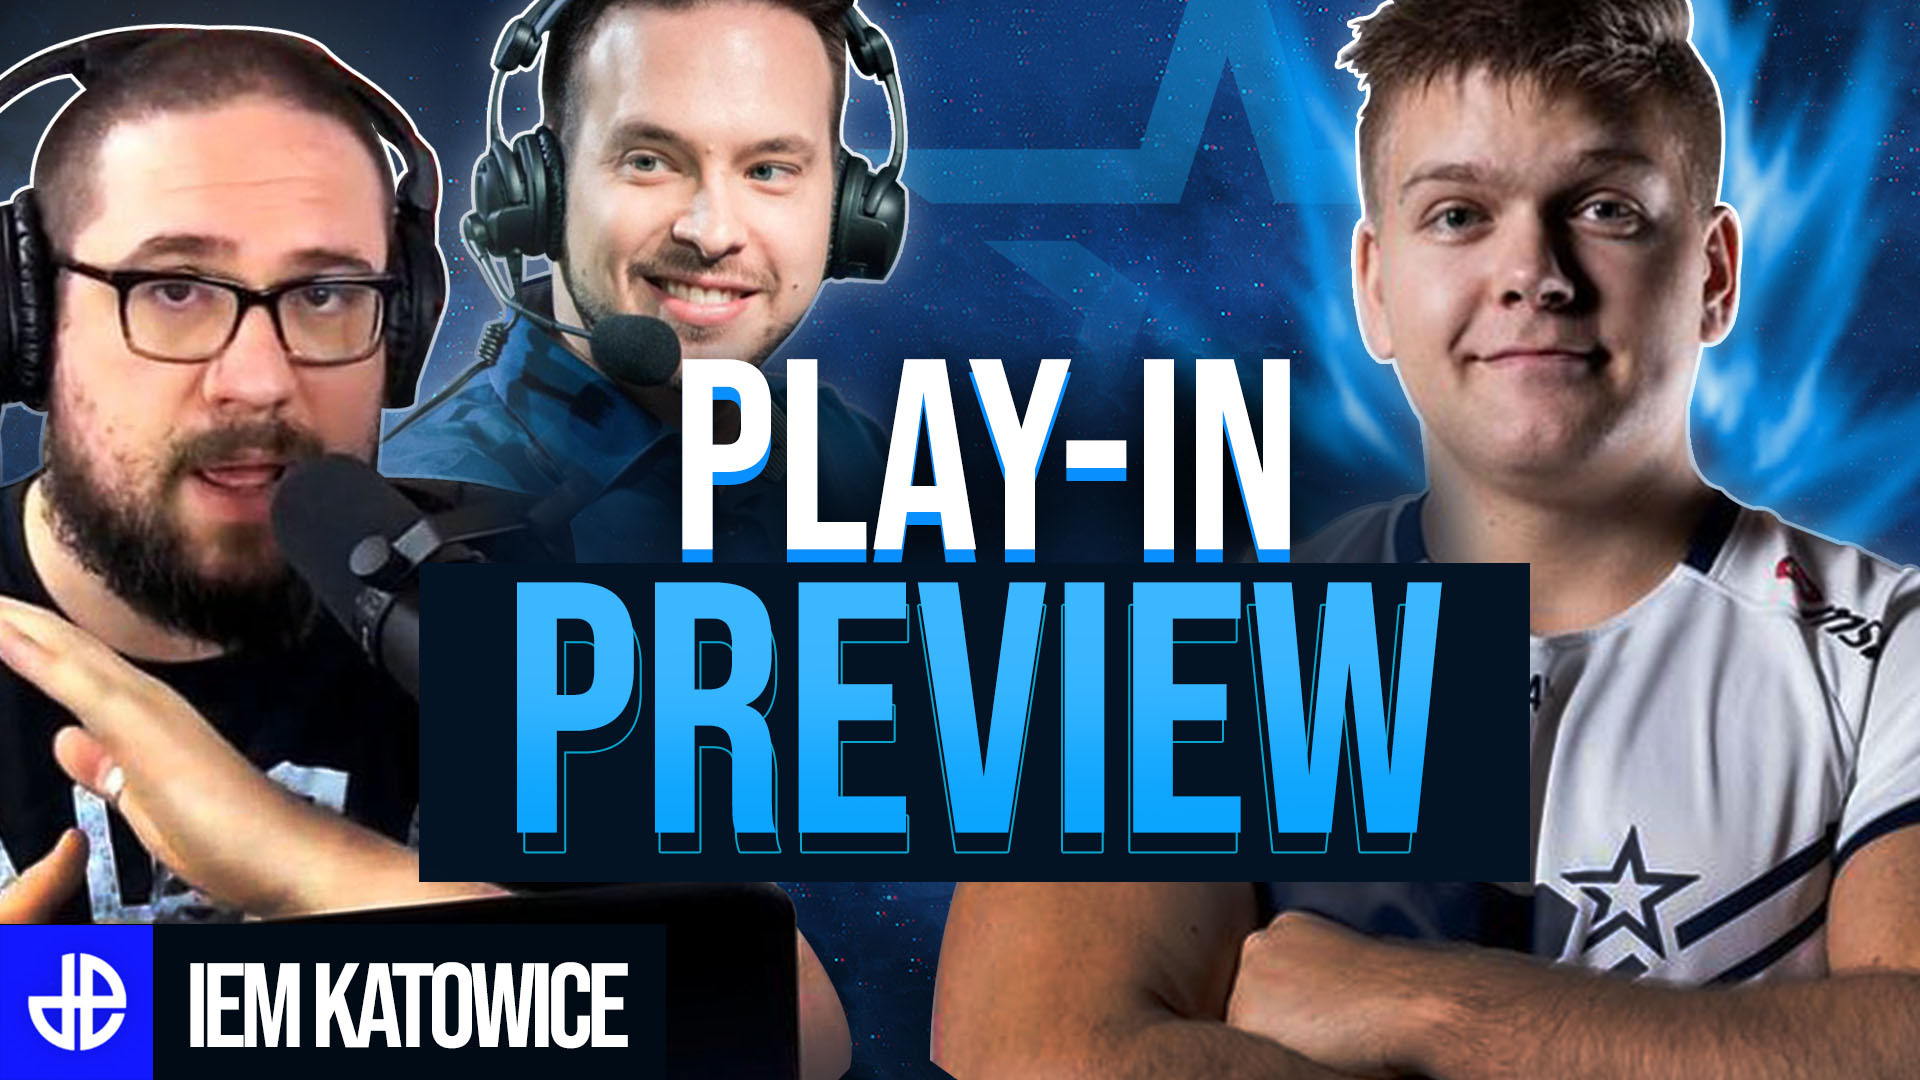 IEM Katowice Play In Preview with Richard Lewis, Maniac